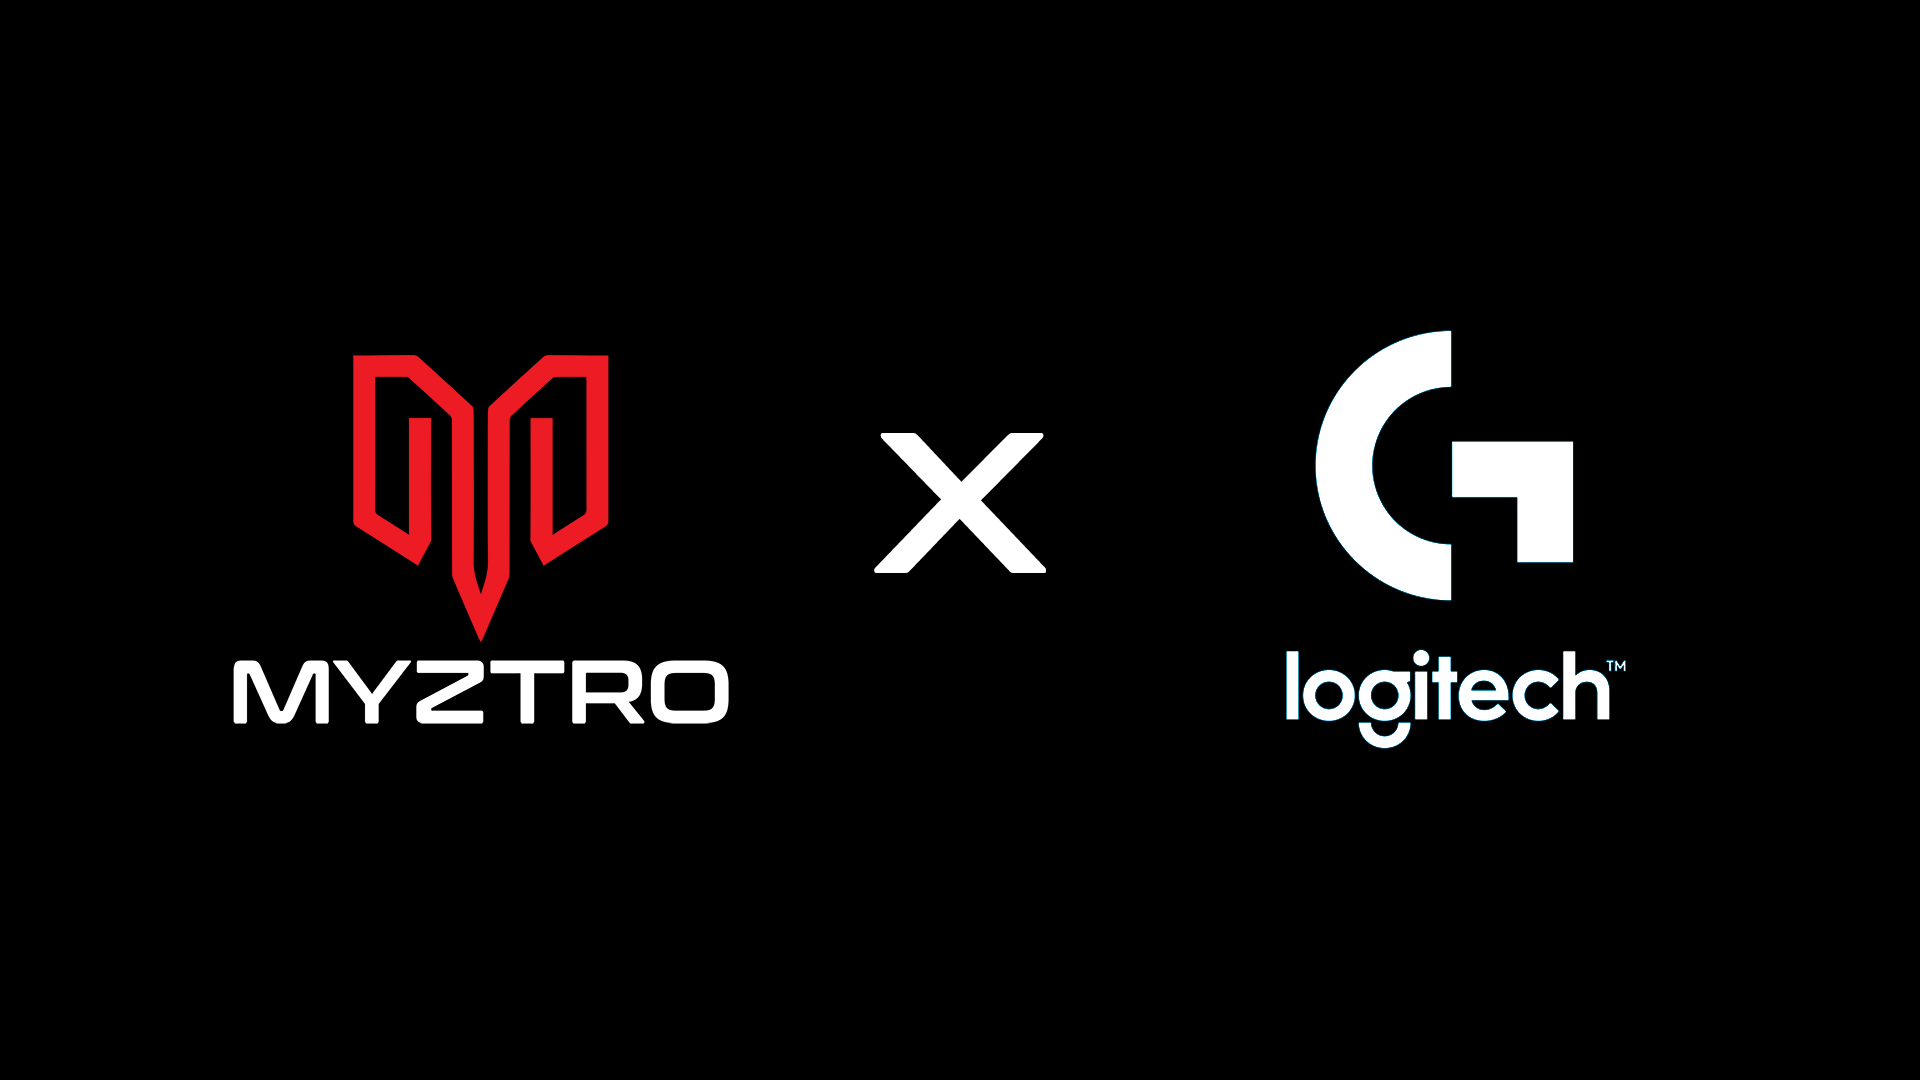 Myztro Gaming Announces Extended Partnership with Logitech